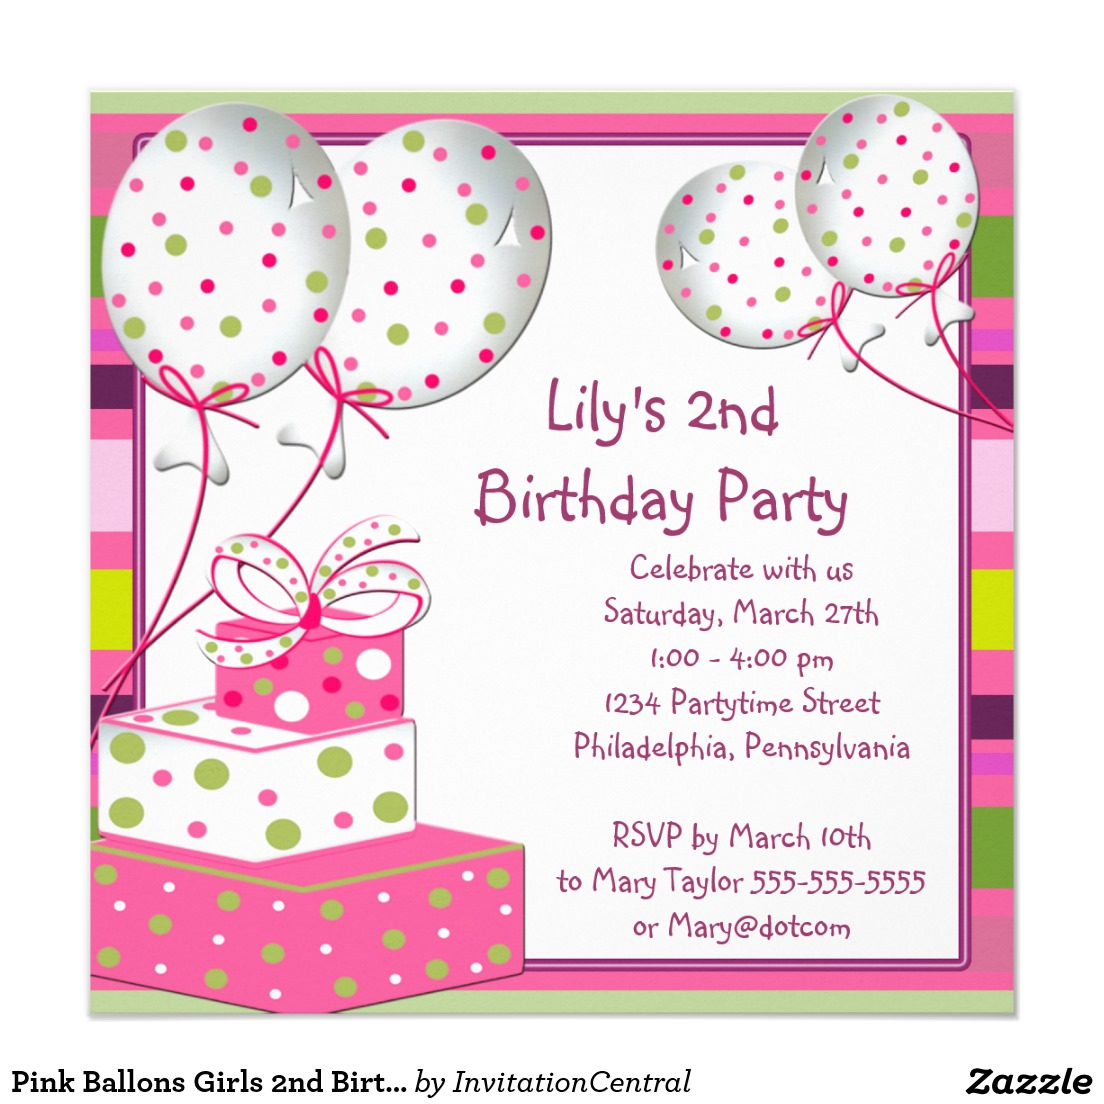 design an invitation card for your birthday party ; top_19_invitation_cards_for_birthday_party_4